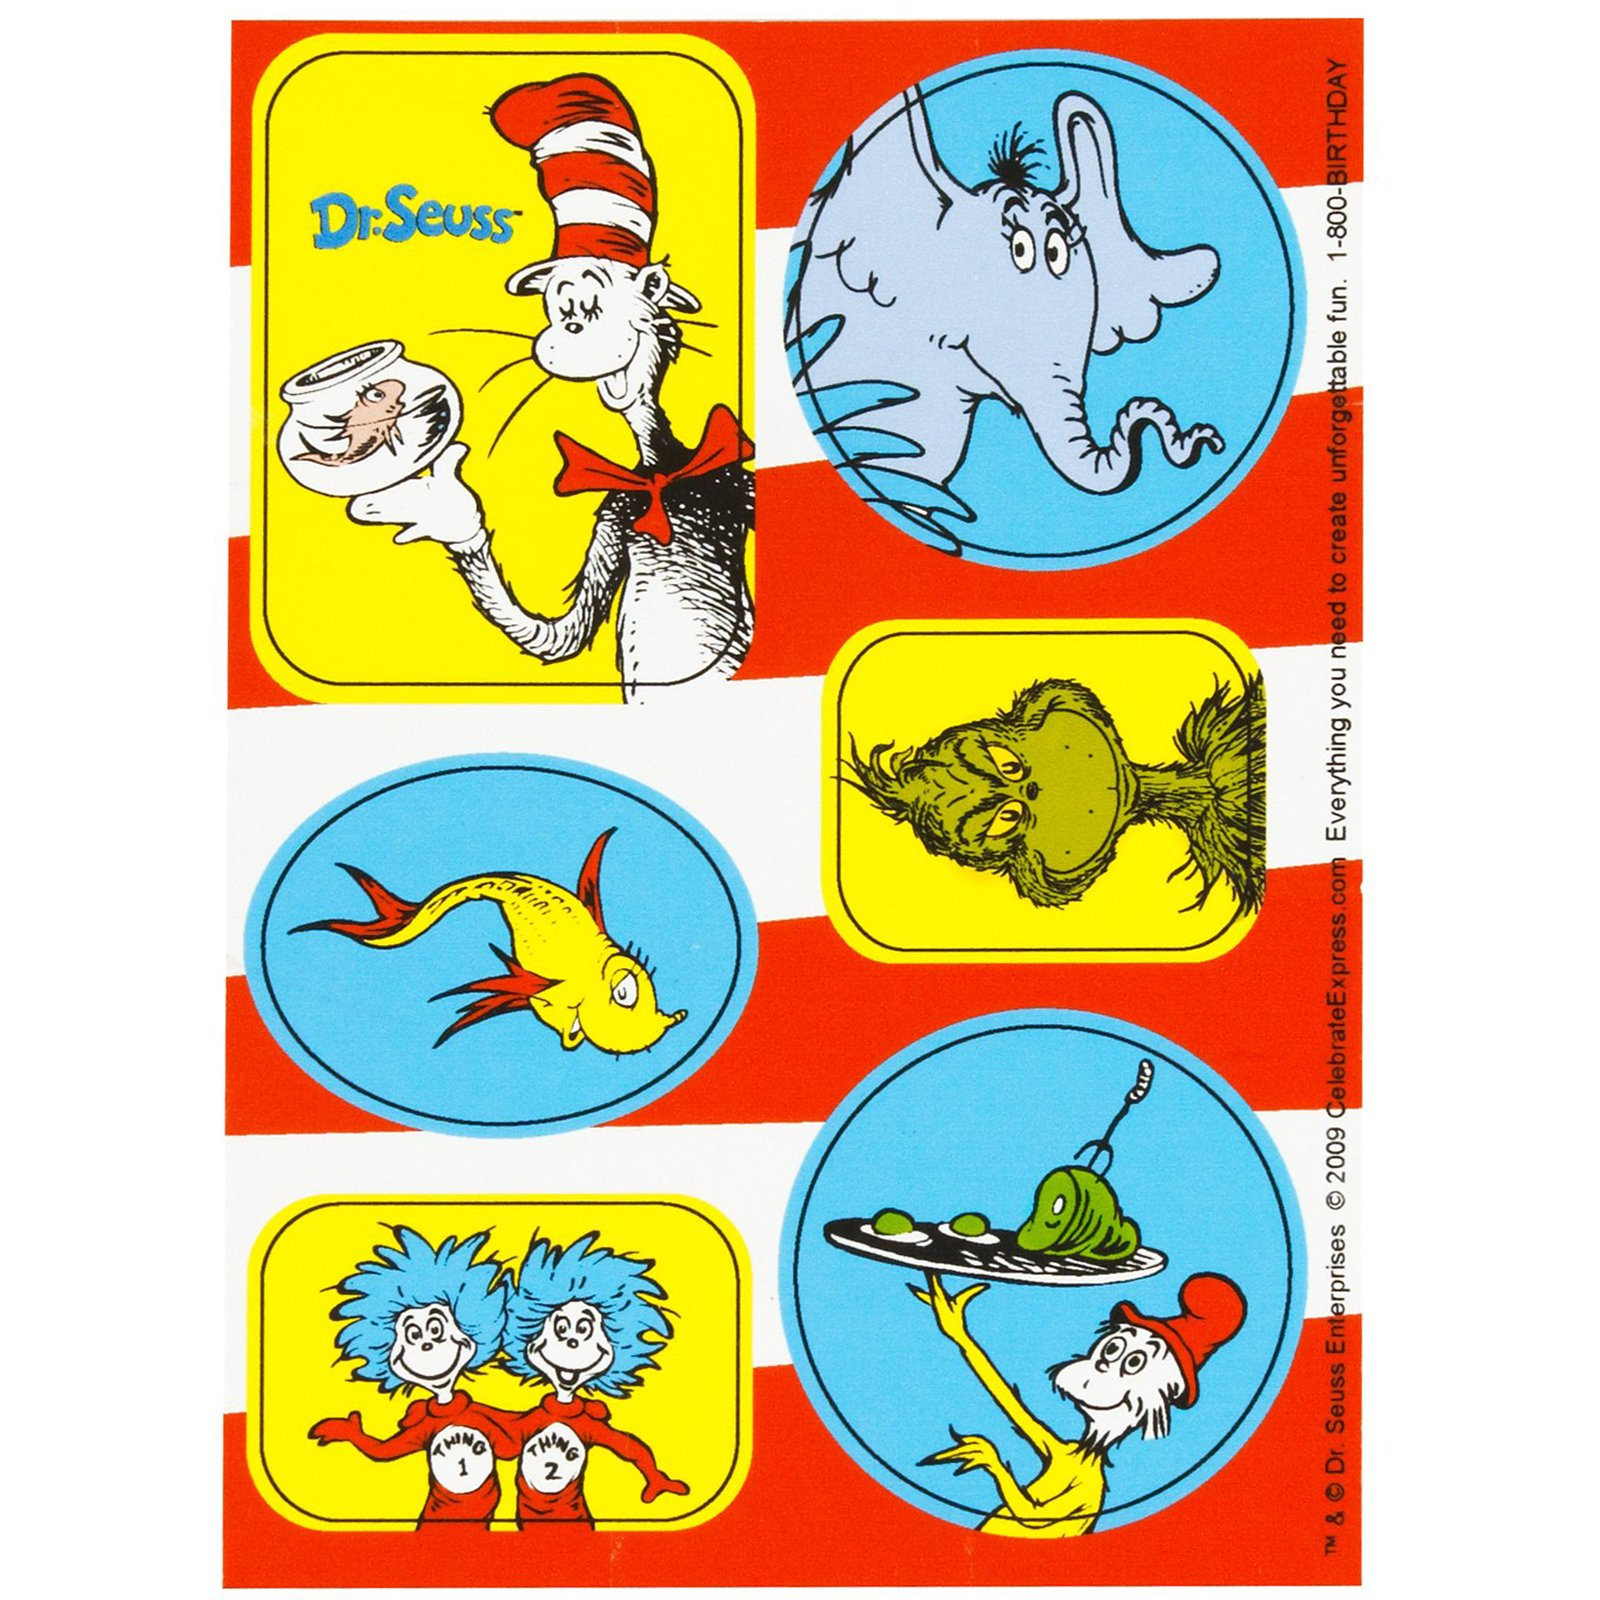 1600x1600 Dr. Seuss Sticker Sheets